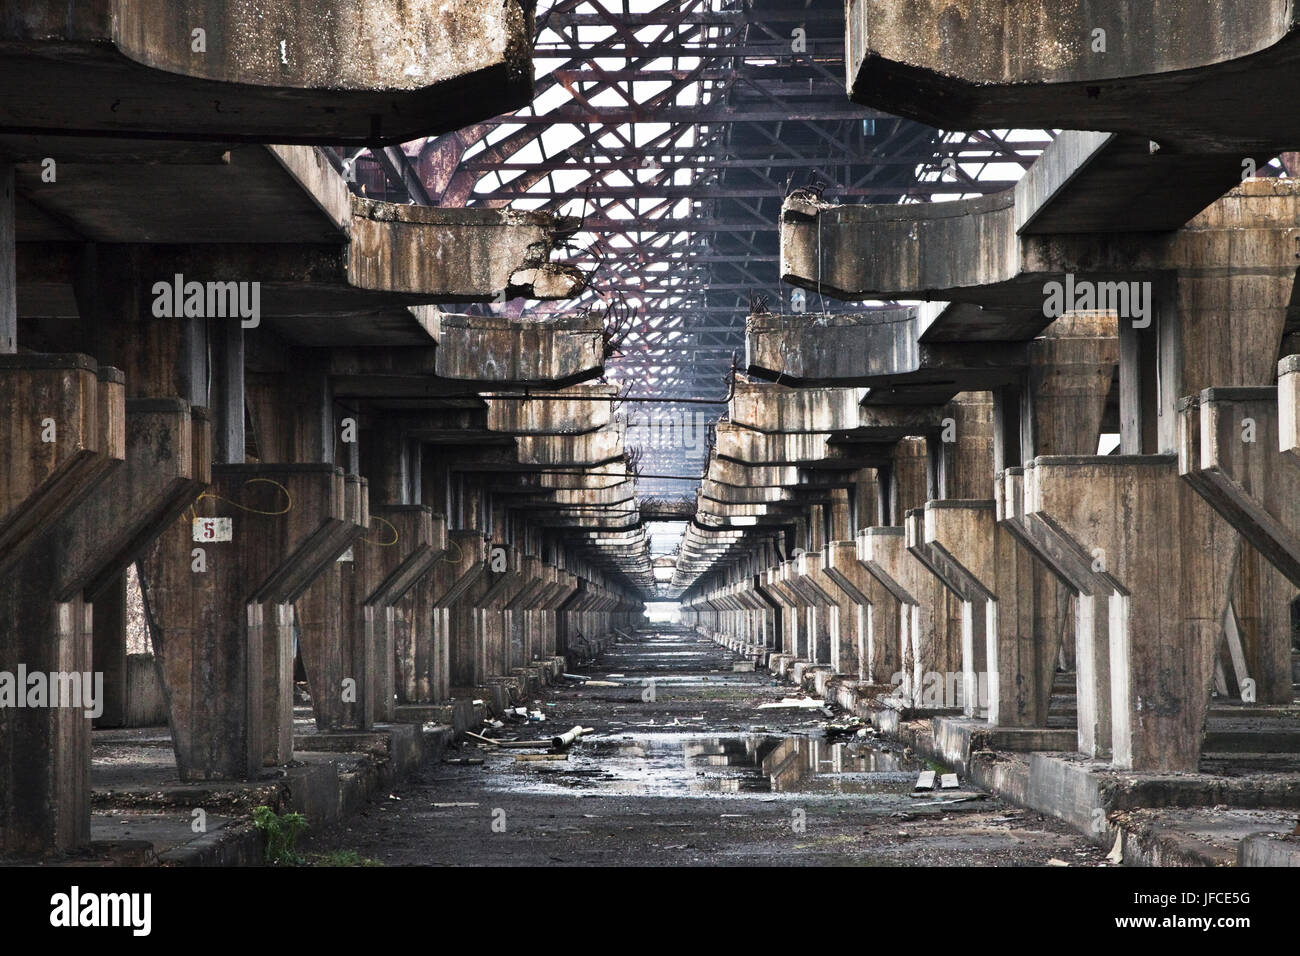 An abandoned industrial site in Fusina near Venice, Italy. Stock Photo